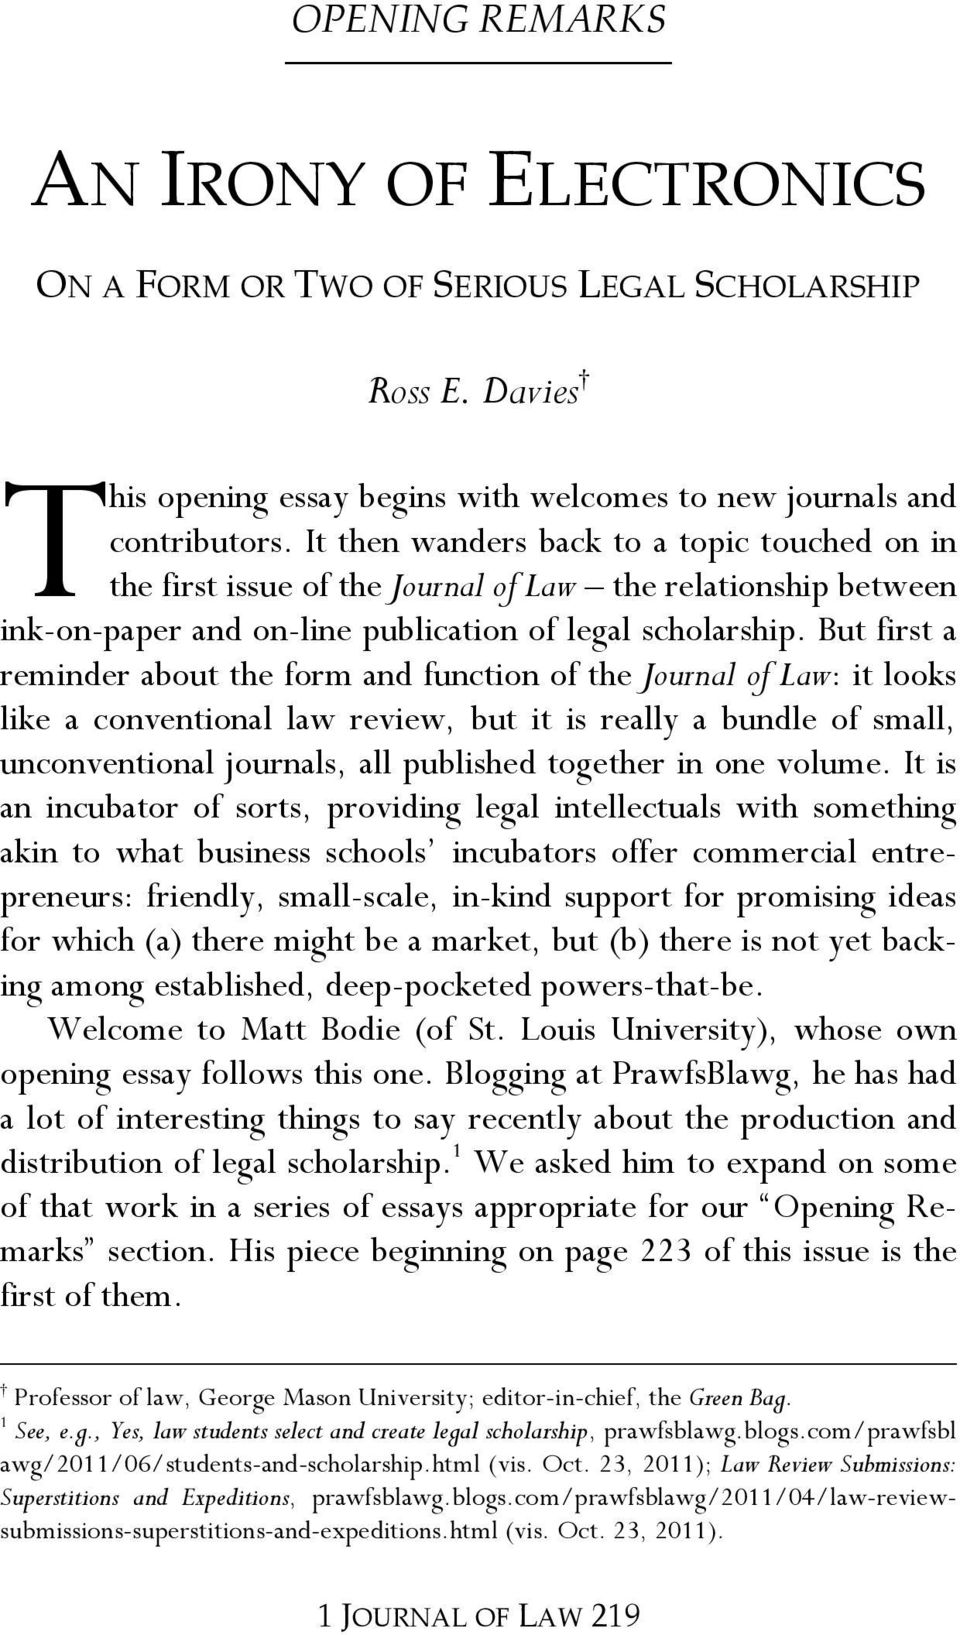 But first a reminder about the form and function of the Journal of Law: it looks like a conventional law review, but it is really a bundle of small, unconventional journals, all published together in